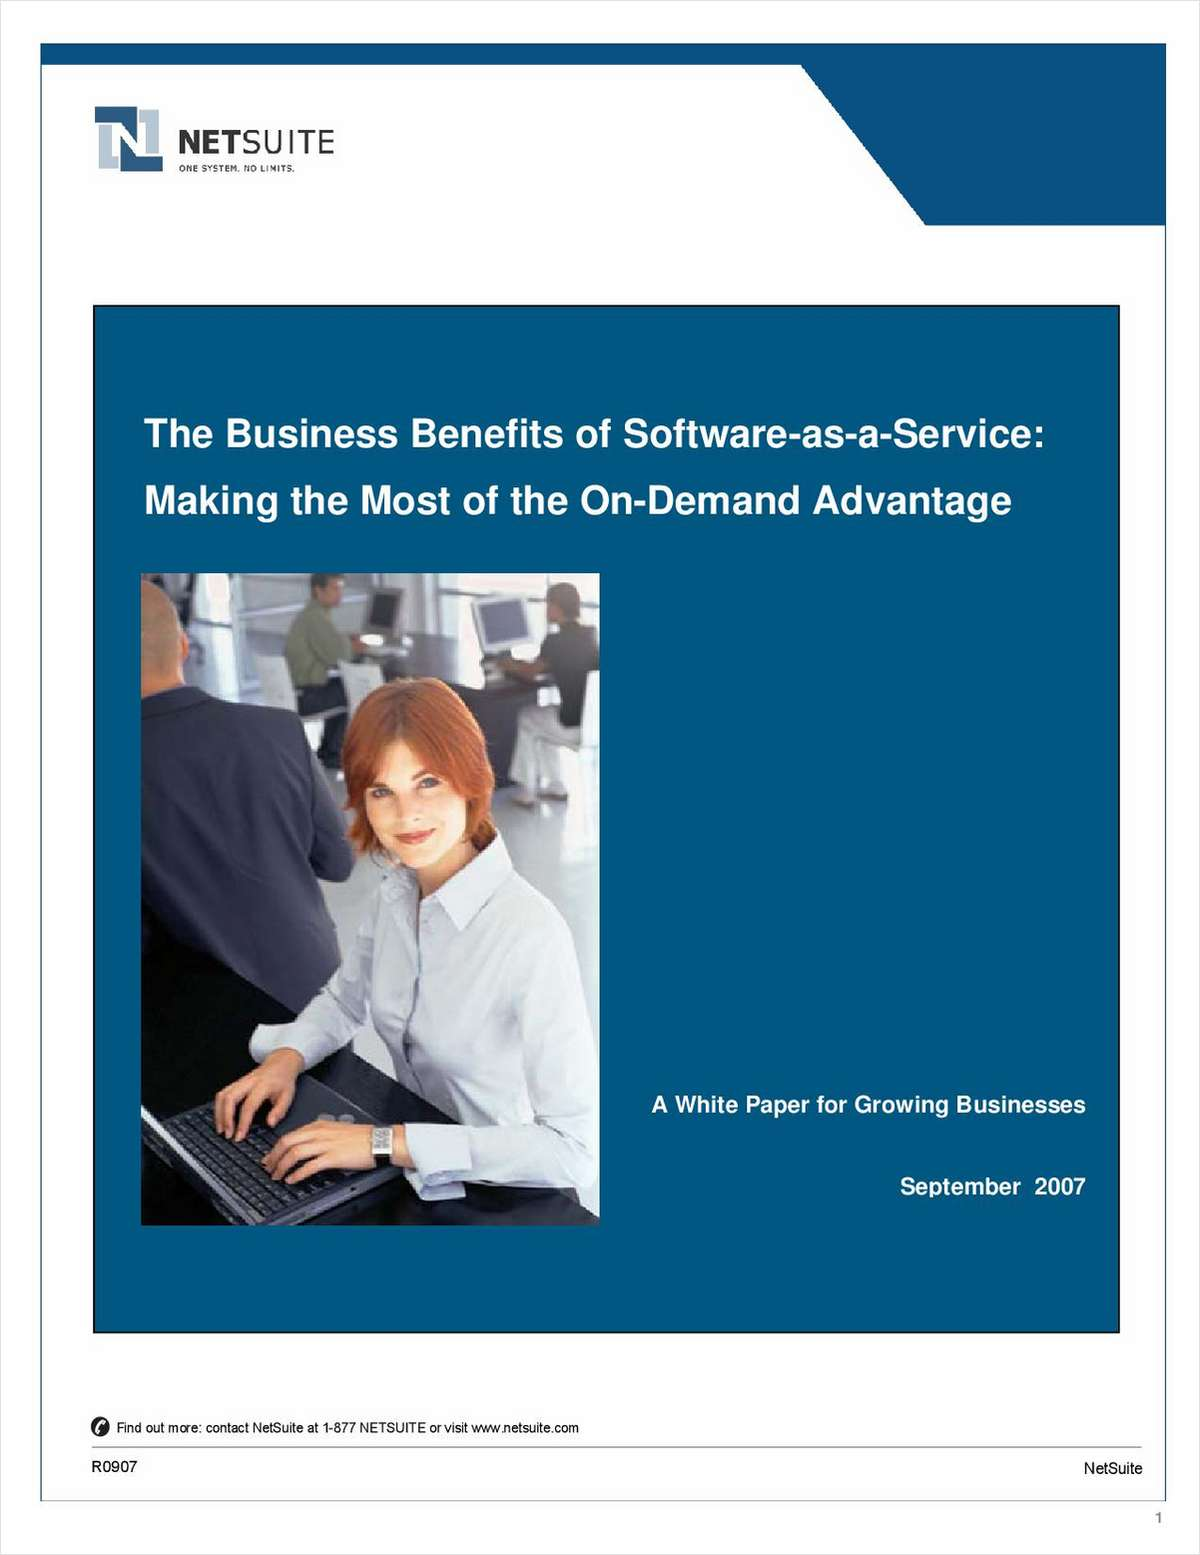 The Business Benefits of Software-as-a-Service: Making the Most of the On-Demand Advantage